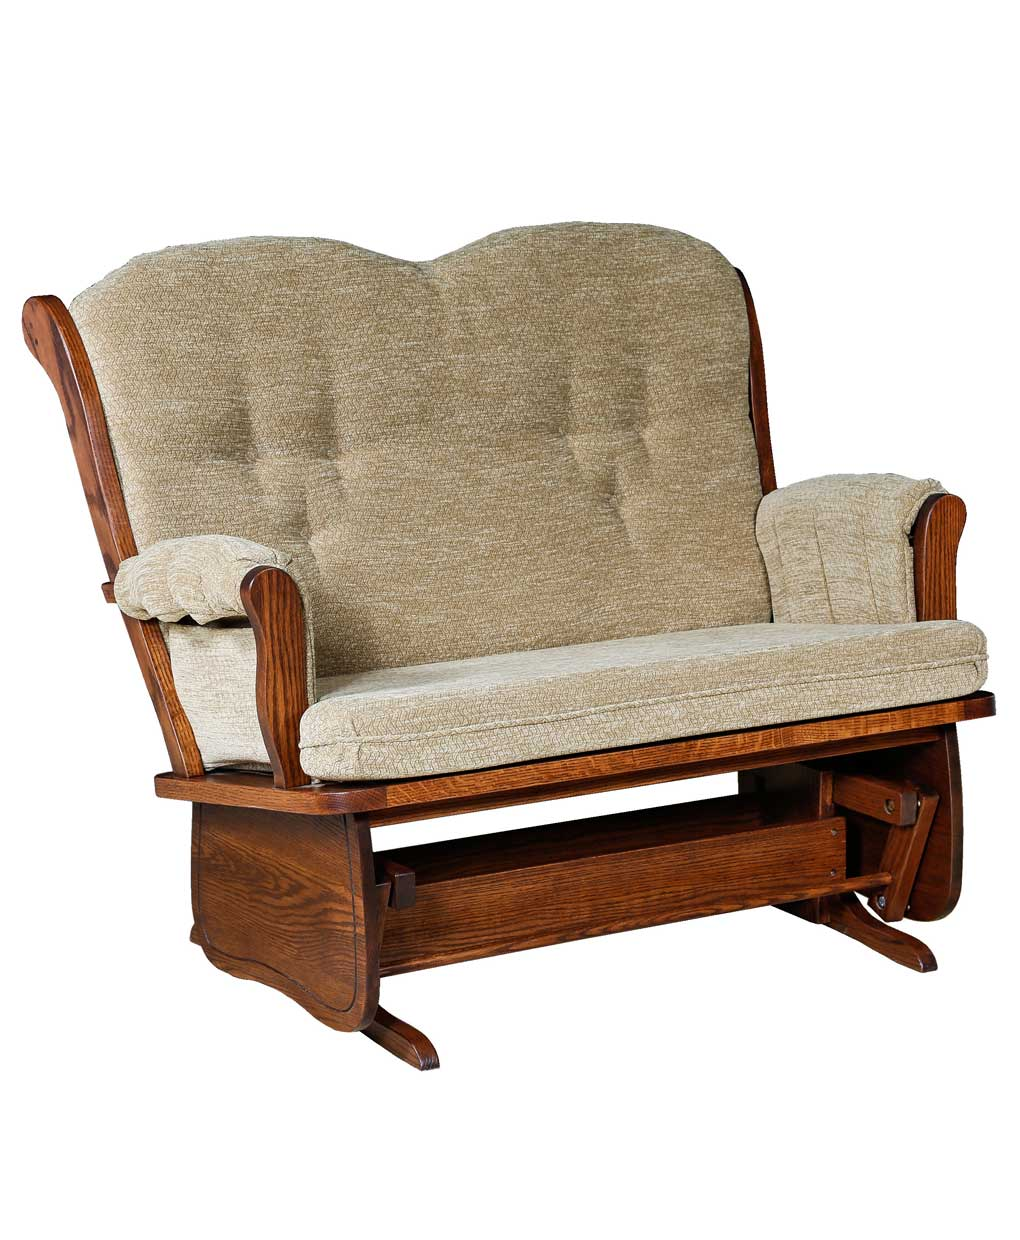 Swan Back Loveseat Glider  Amish Direct Furniture. Best Kitchen Cabinet Material. White Lacquer Kitchen Cabinets. Kitchen Cabinet Paint Color Ideas. Kitchen Cabinet Moldings. Kitchen Cabinets York Pa. Off White Kitchen Cabinets. Standard Kitchen Cabinet Measurements. Creative Kitchen Cabinets